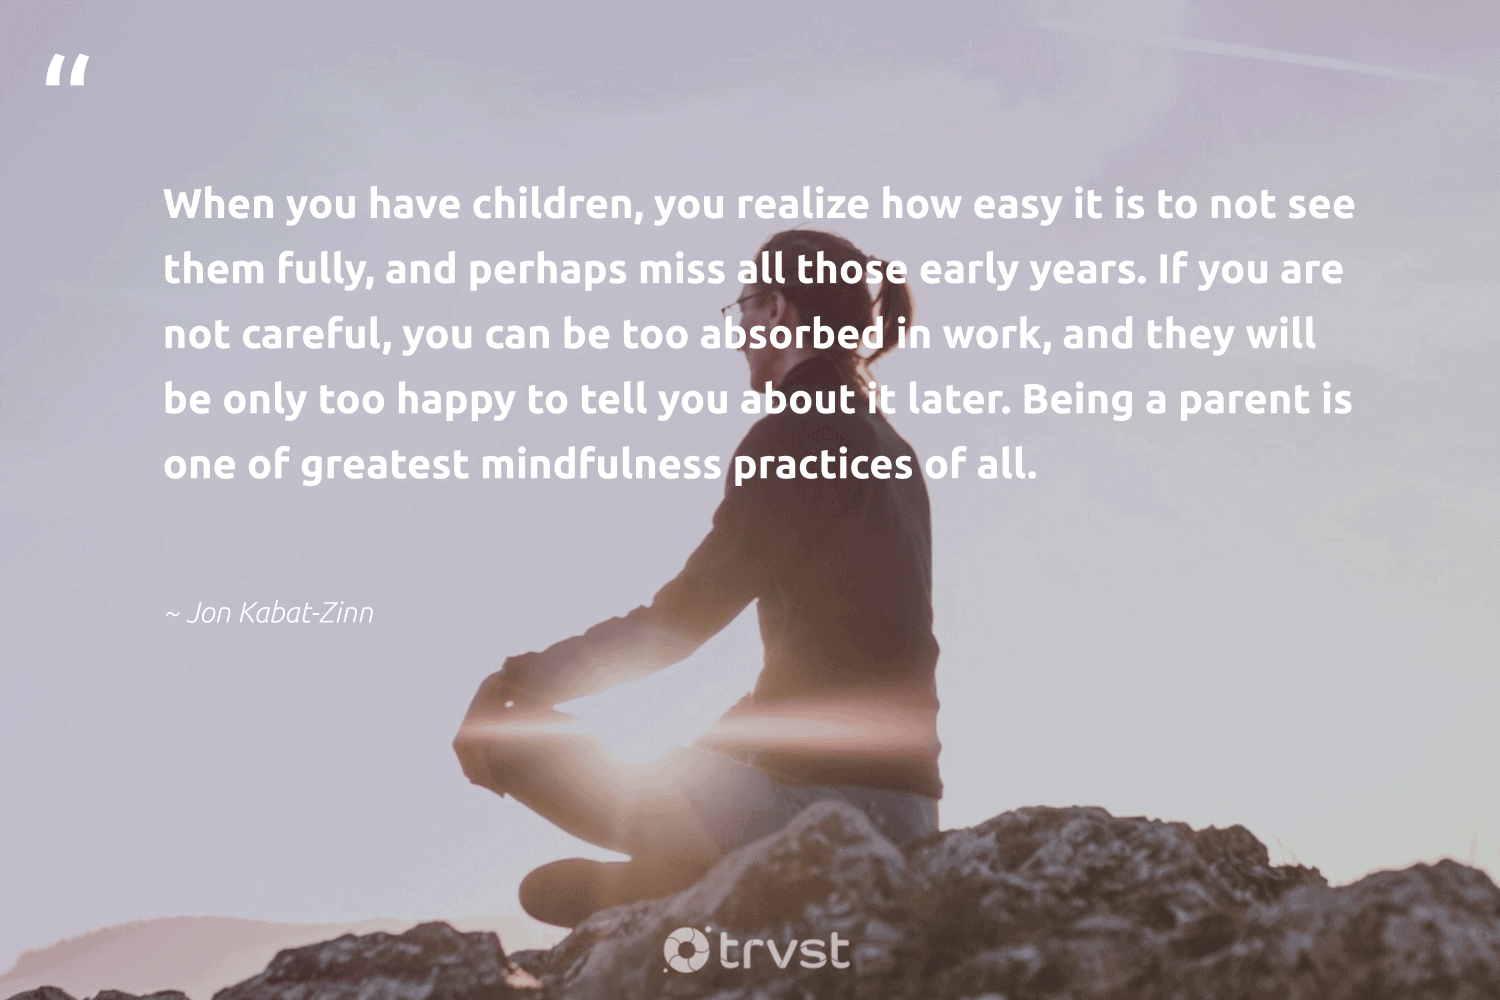 """""""When you have children, you realize how easy it is to not see them fully, and perhaps miss all those early years. If you are not careful, you can be too absorbed in work, and they will be only too happy to tell you about it later. Being a parent is one of greatest mindfulness practices of all.""""  - Jon Kabat-Zinn #trvst #quotes #children #happy #mindfulness #entrepreneurmindset #meditation #changemakers #impact #meditate #mentalheatlh #health"""